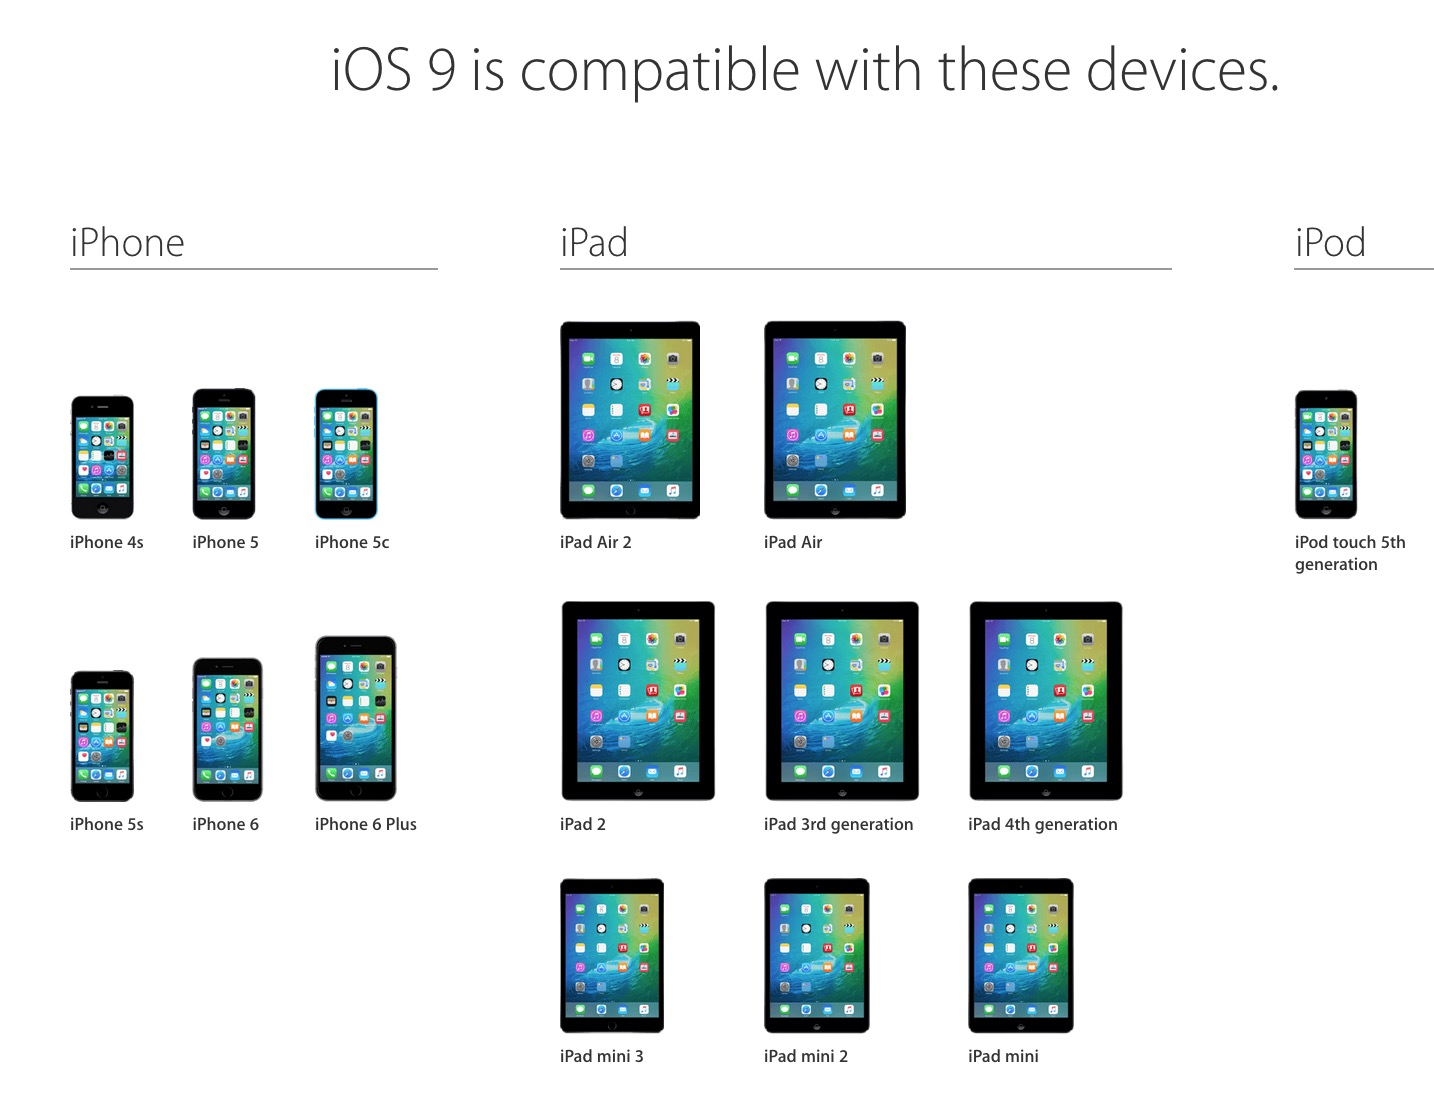 iOS 9 device compatibility chart